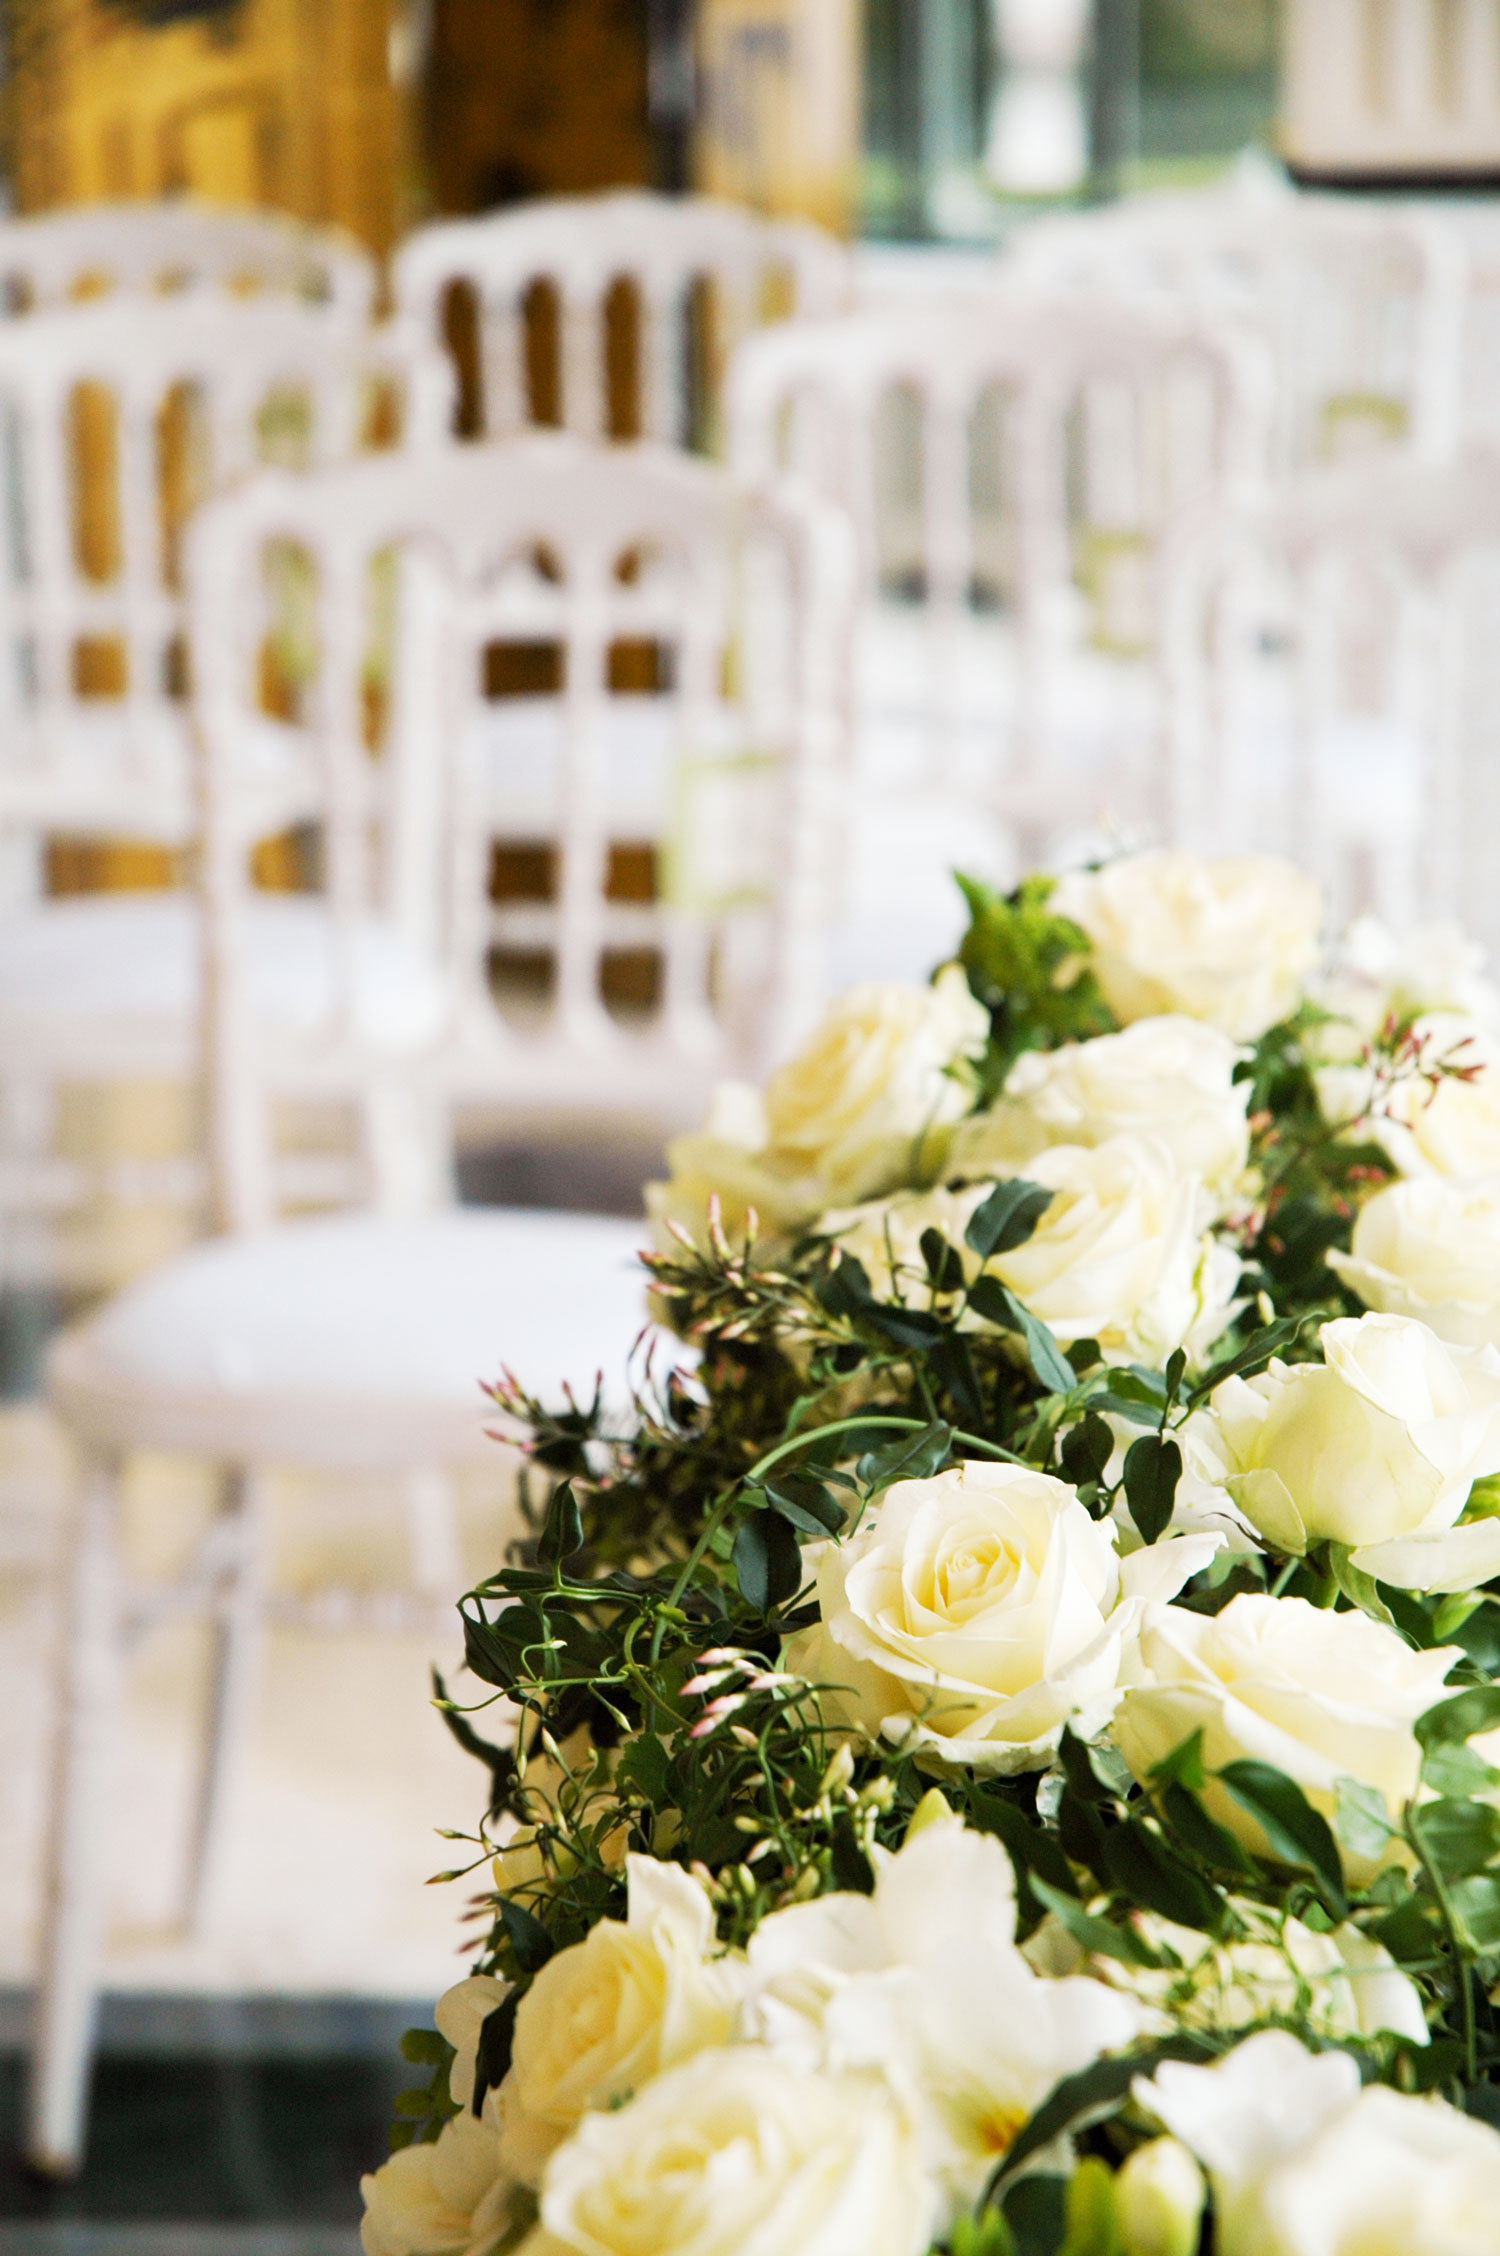 Civil ceremony on Lake Maggiore: floral decorations created by Giuseppina Comoli